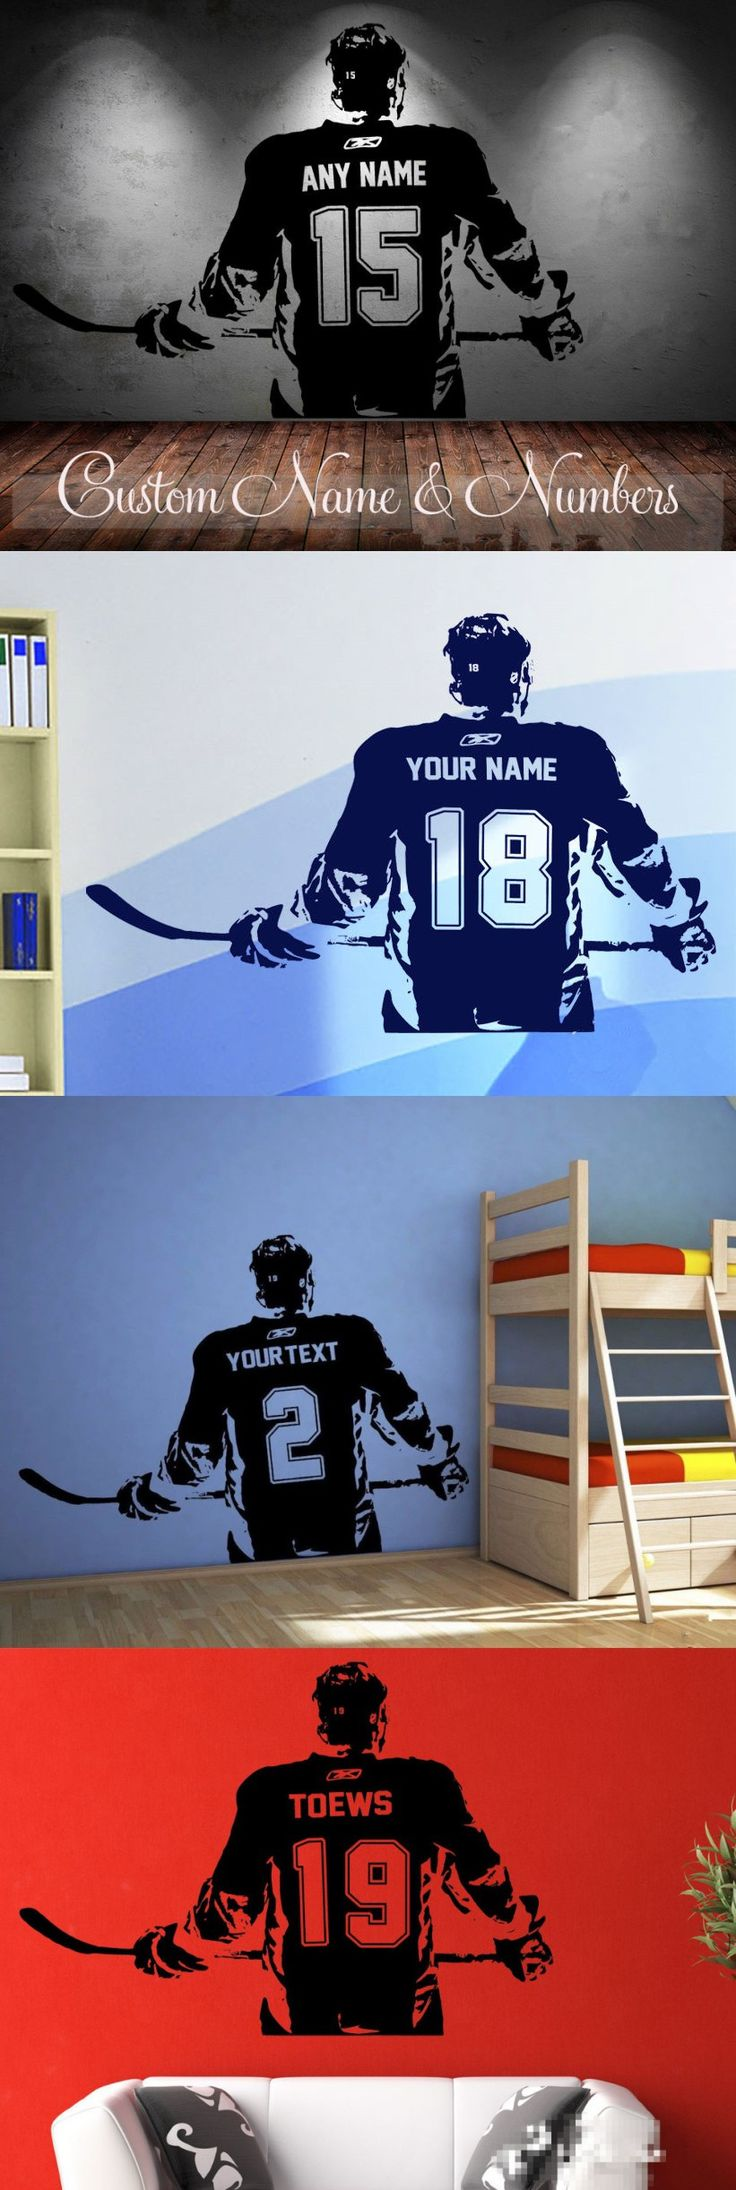 Deer head wall decal option a modern wall decals by dana decals - Hockey Player Wall Art Decal Sticker Choose Name Number Personalized Home Decor Wall Stickers For Kids Room Vinilos Paredes D645